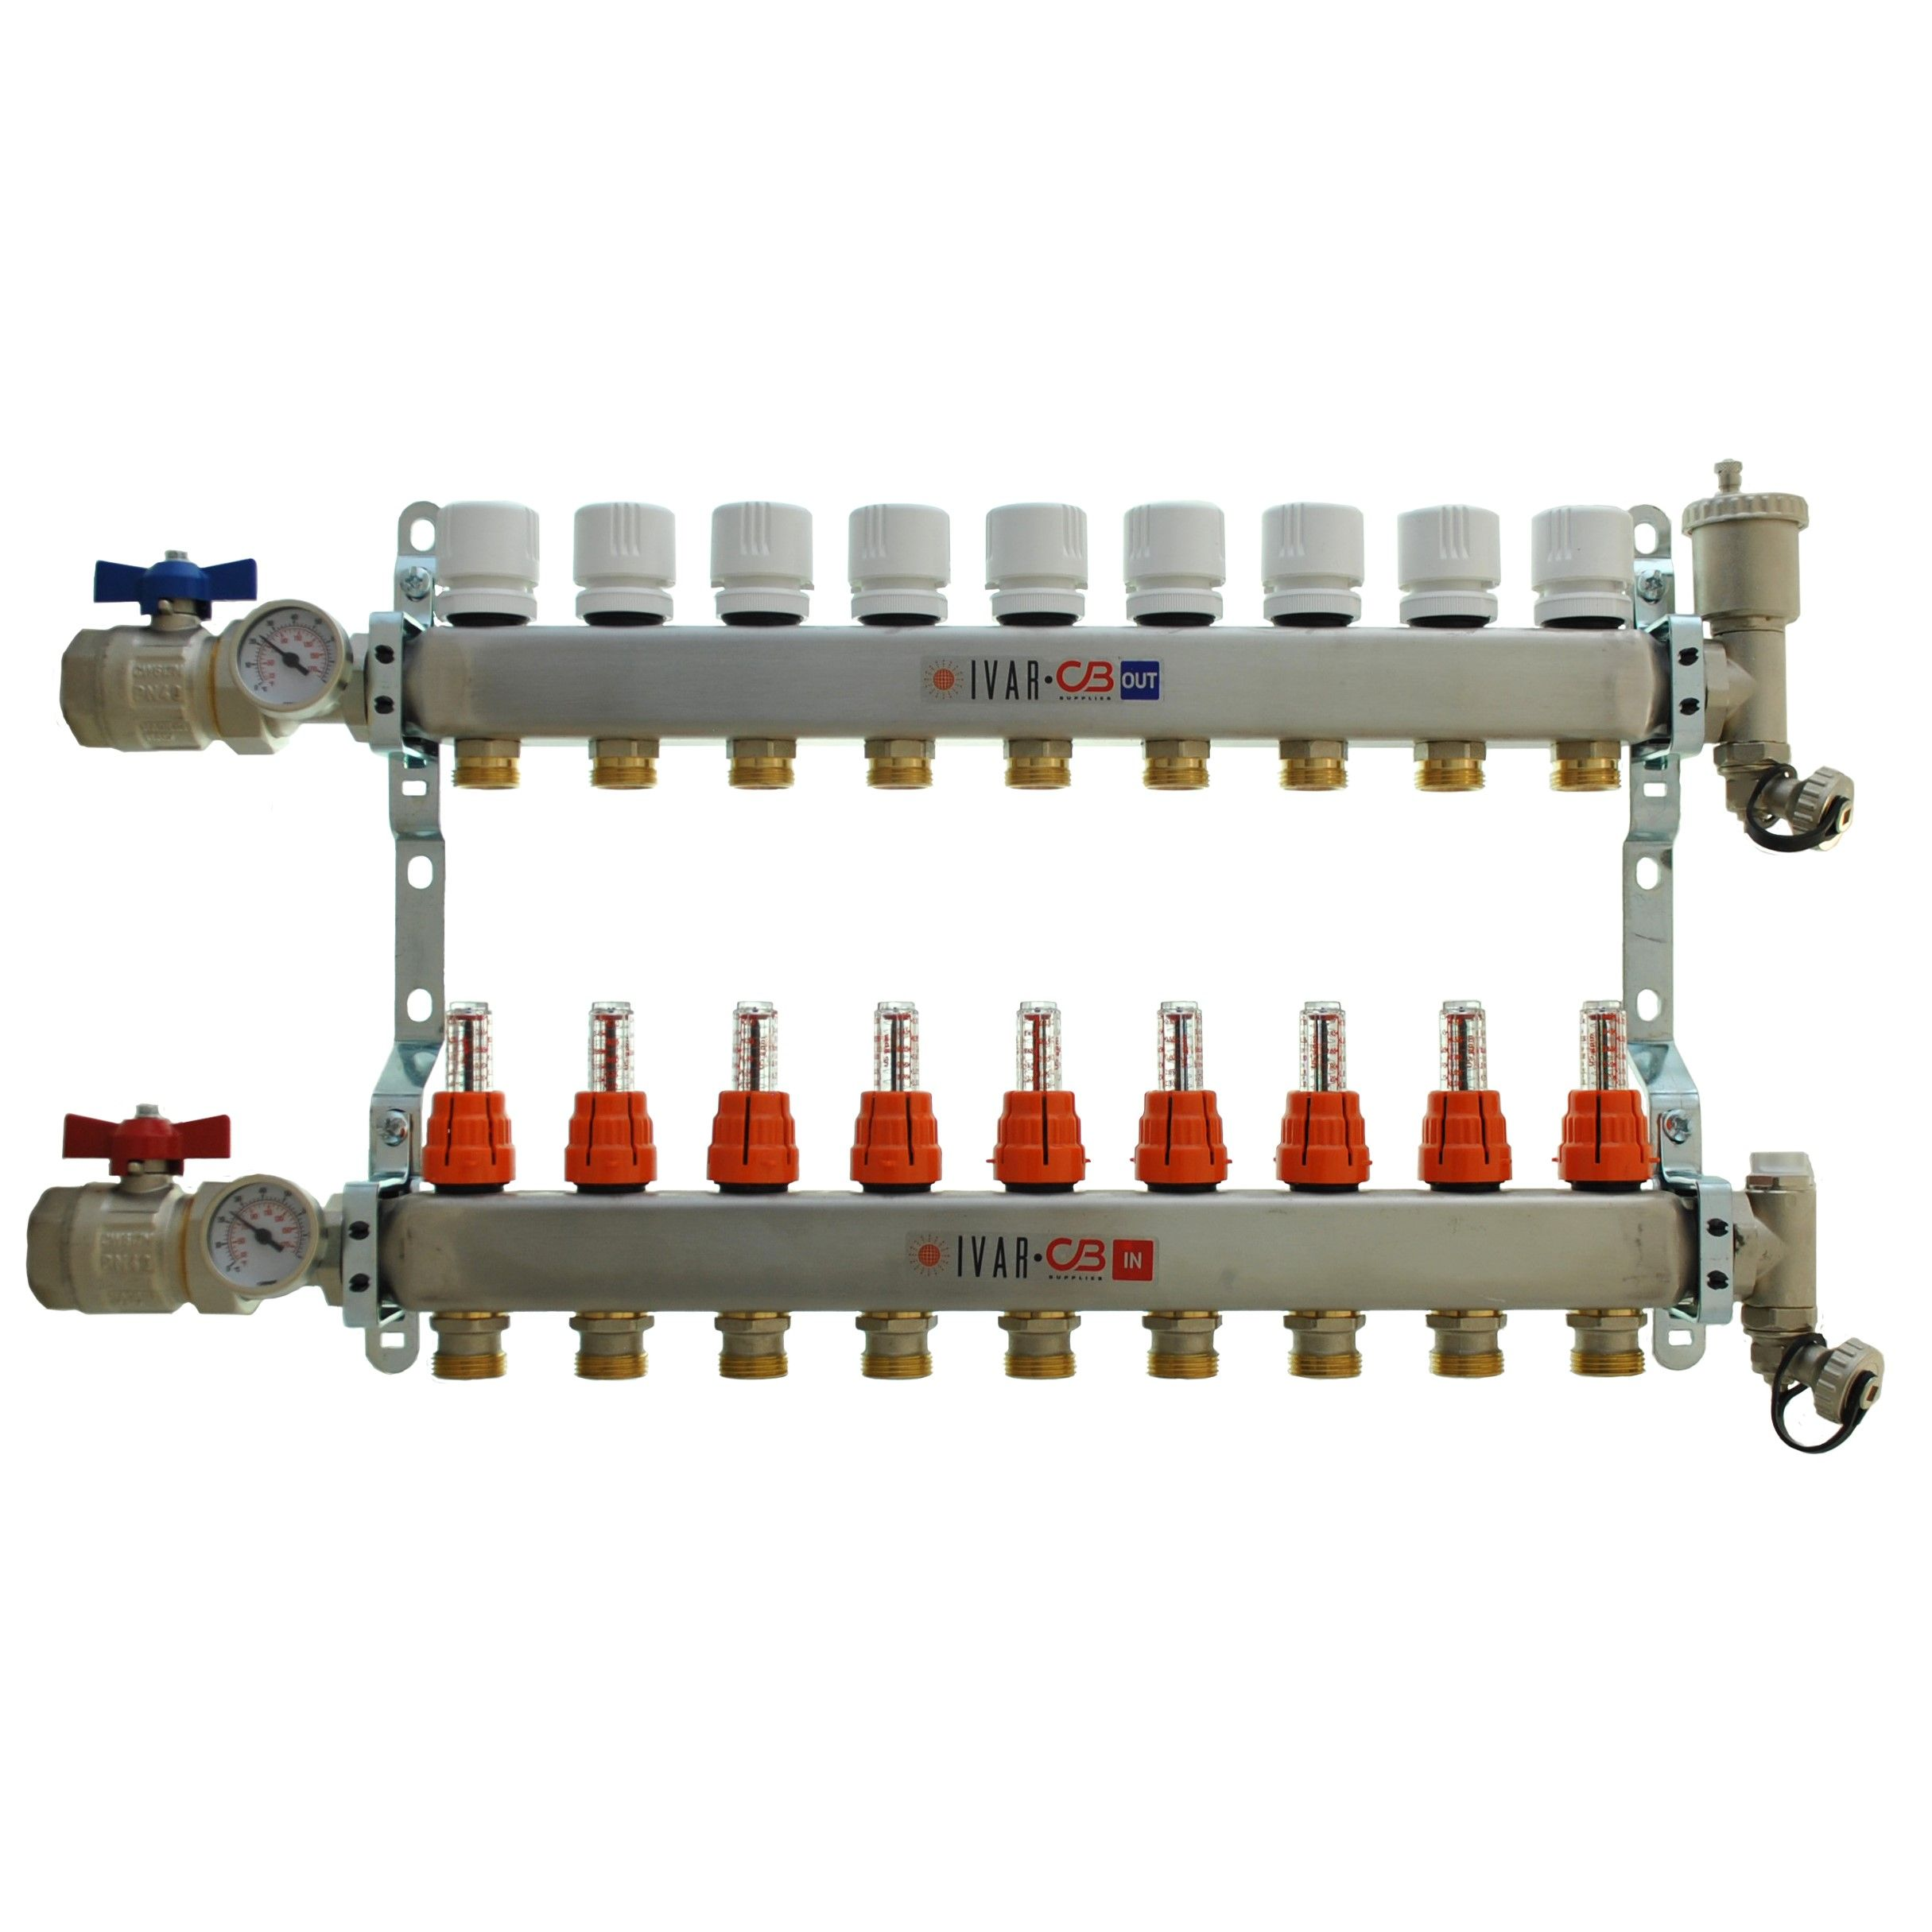 9 Port Manifold with 1/2